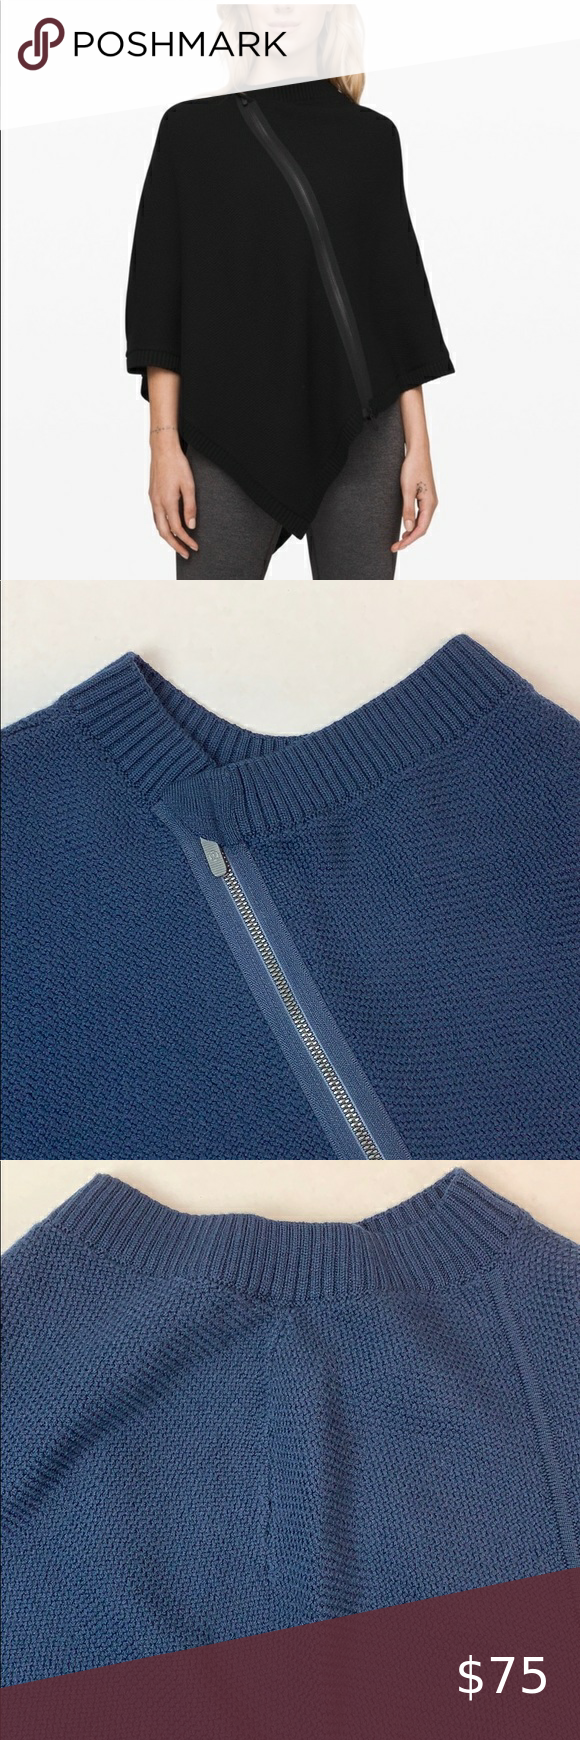 Lululemon EUC On the Go Navy knit poncho OS in 2020